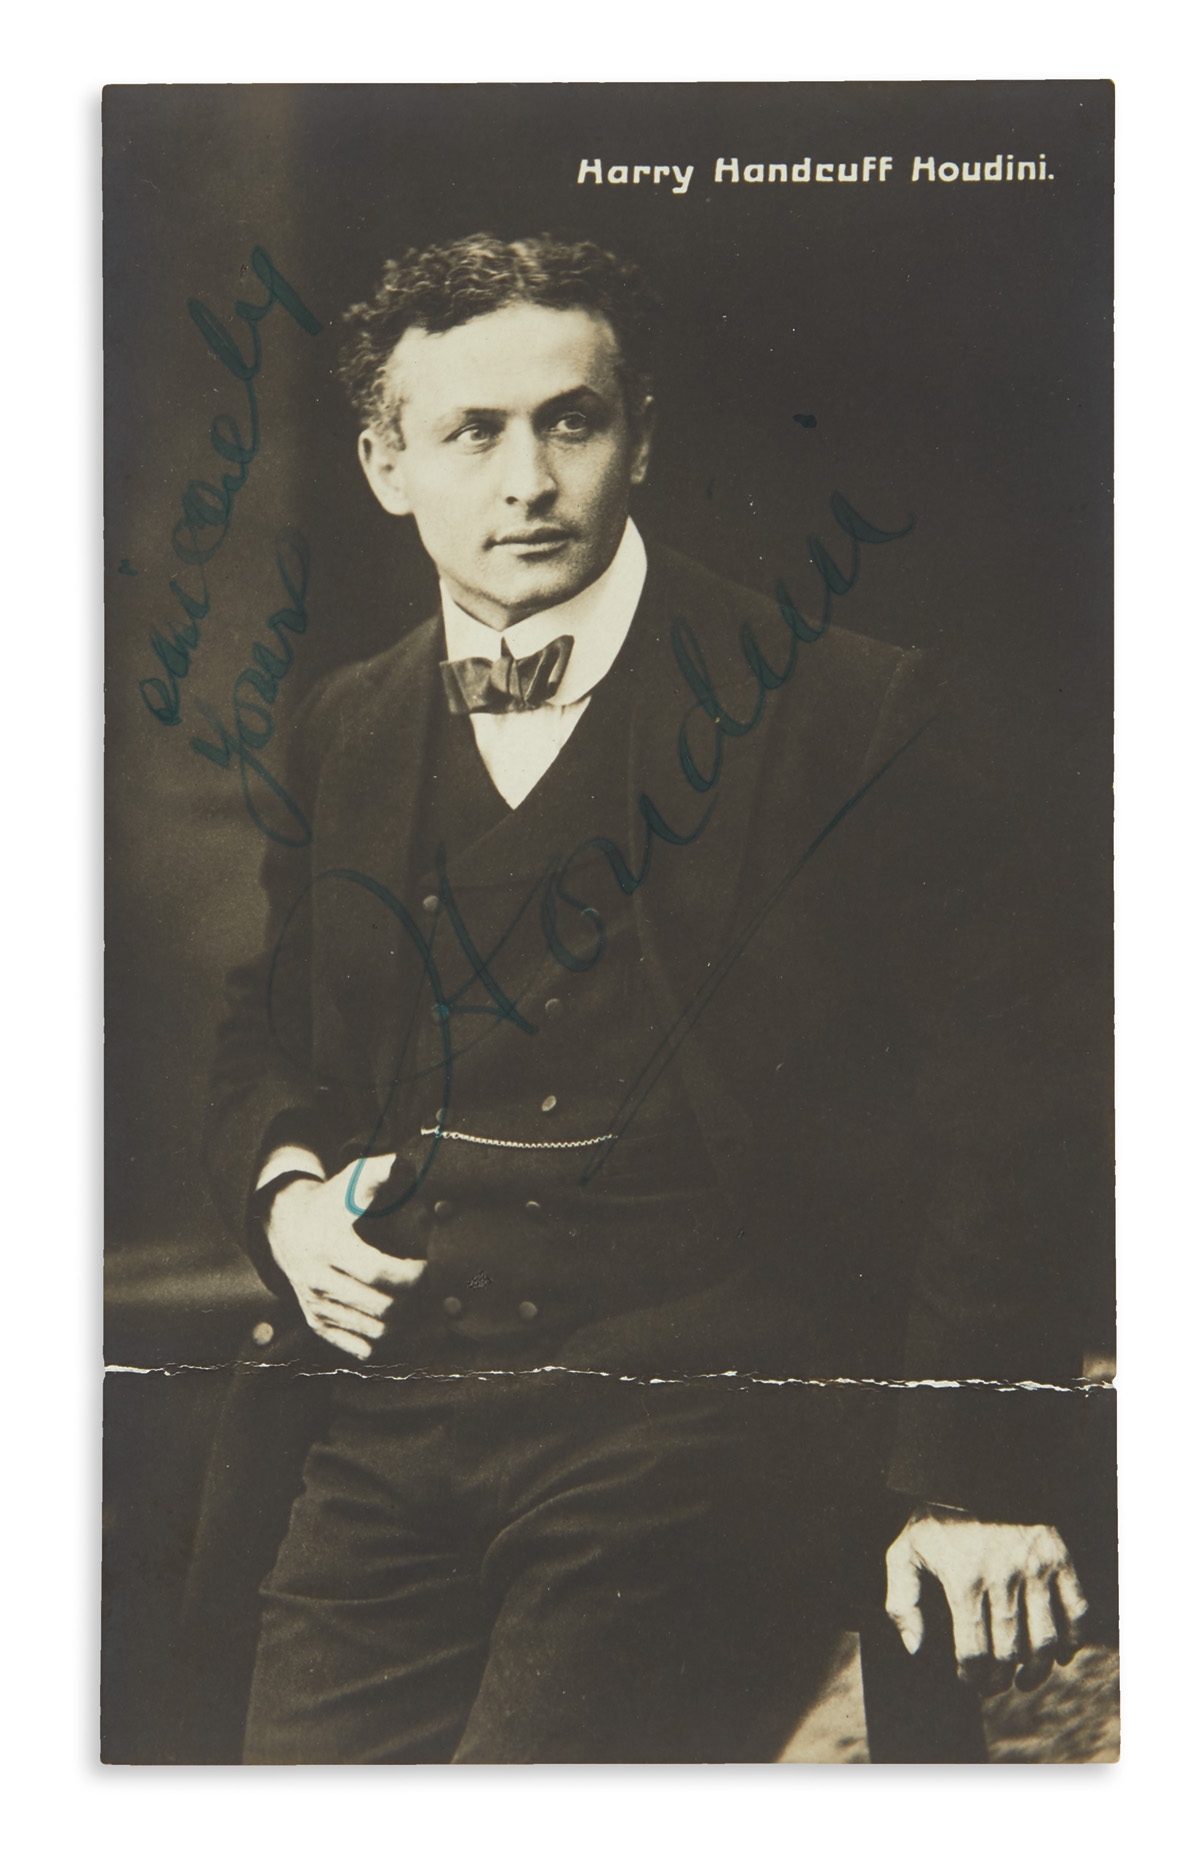 HOUDINI-HARRY-Photograph-postcard-Signed-and-Inscribed-Since